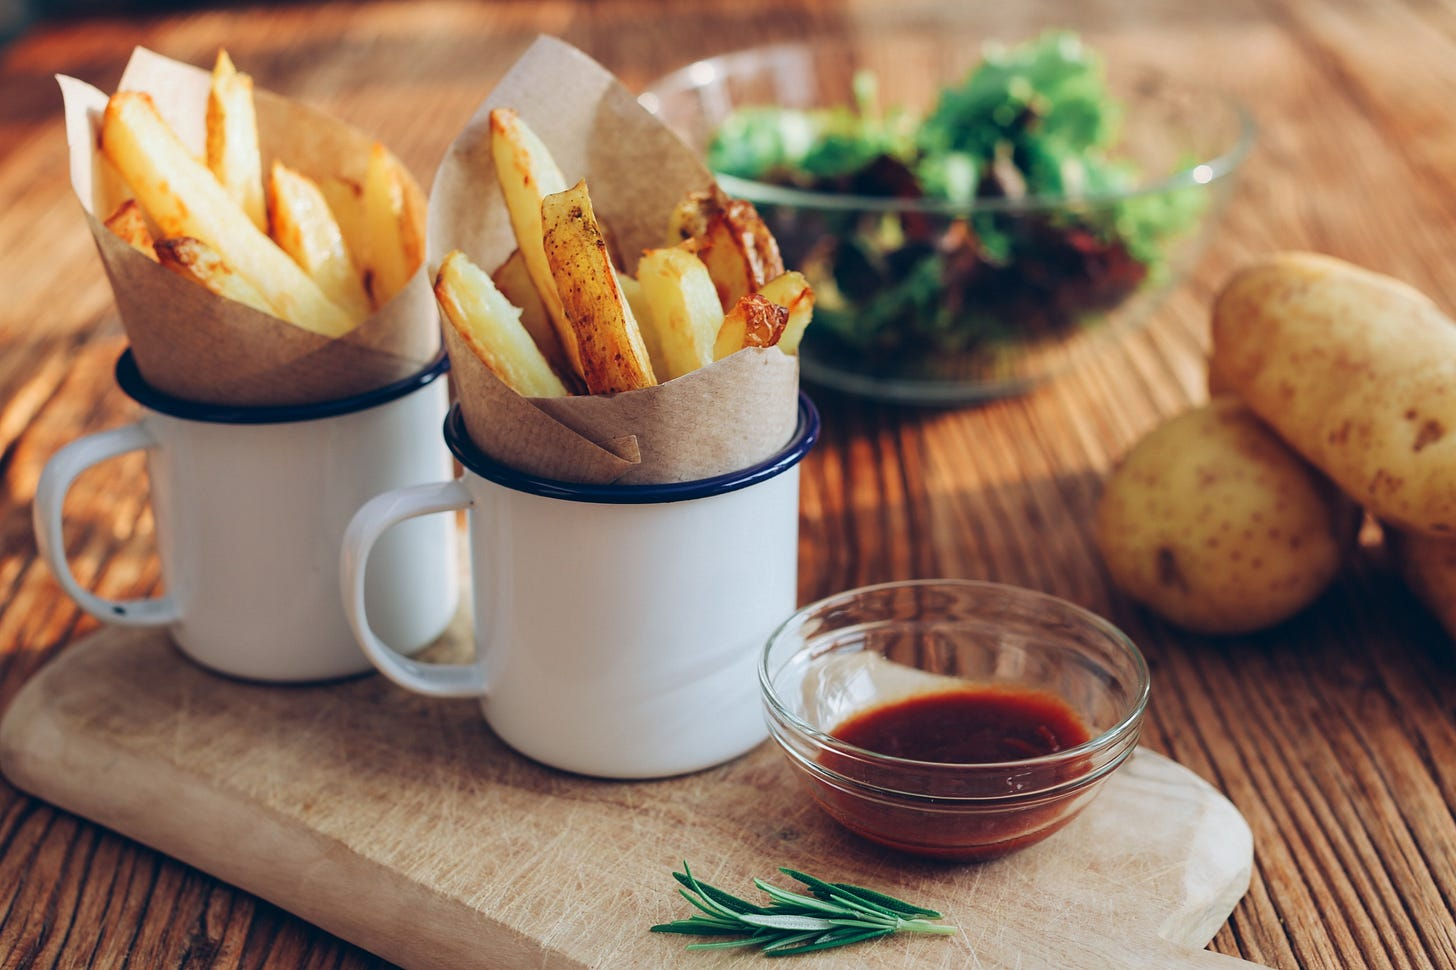 Two cups filled with French fries.